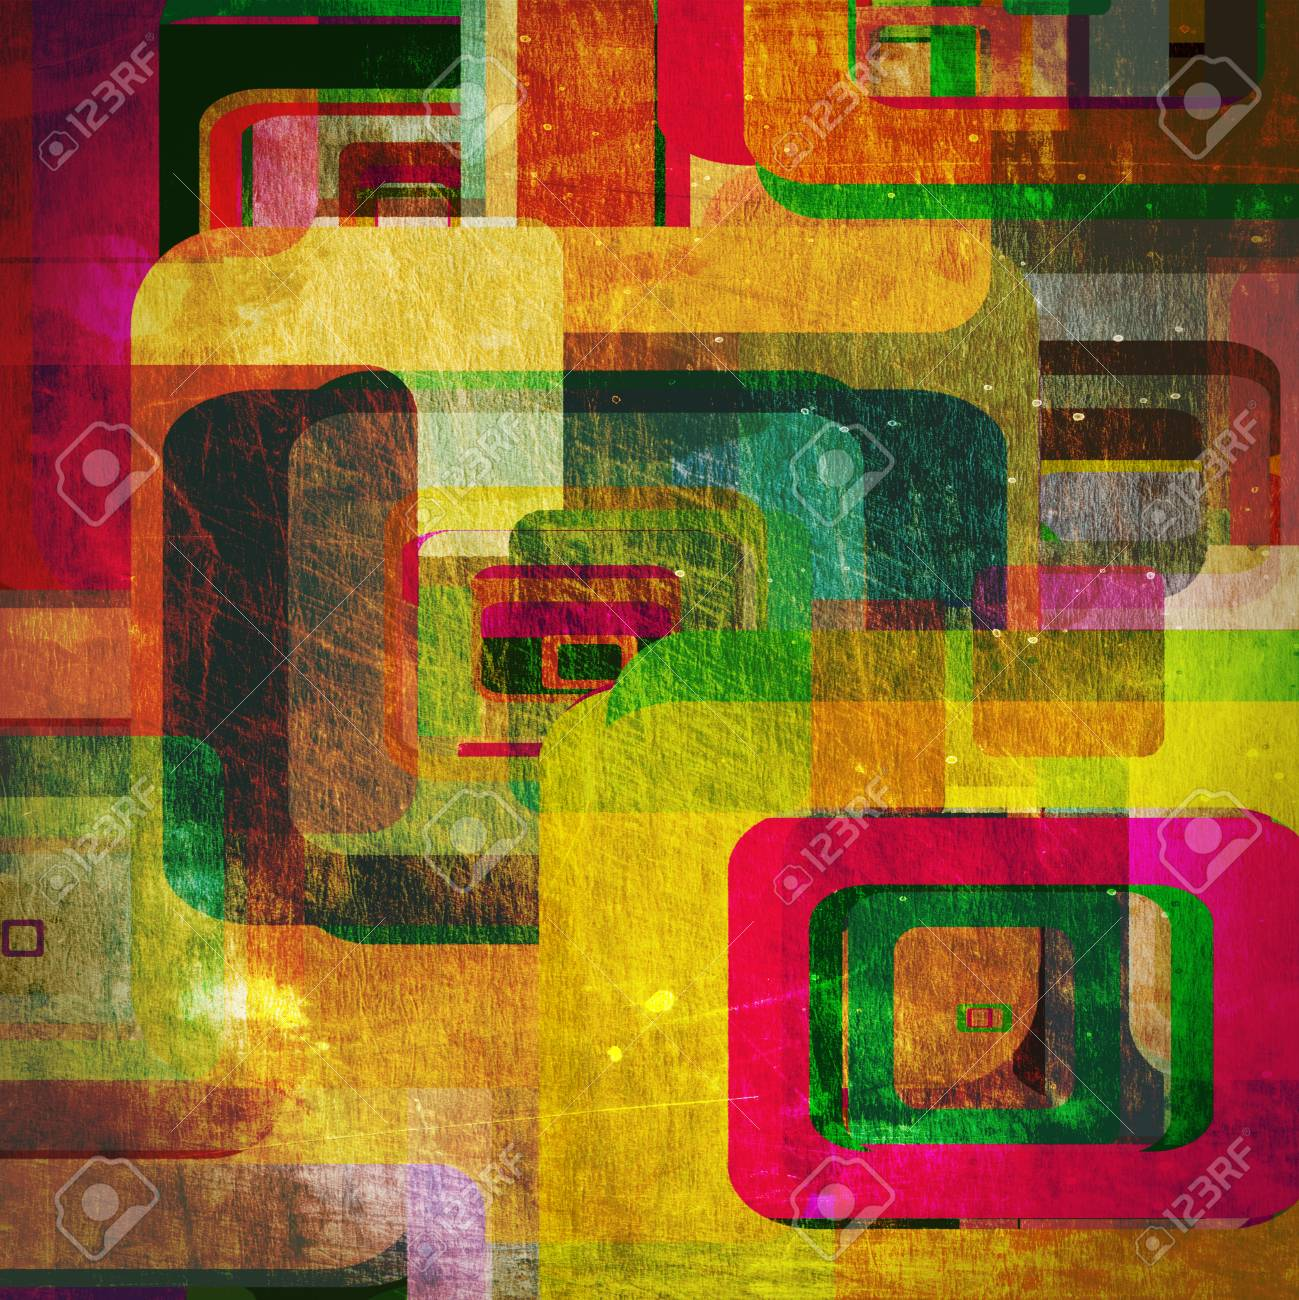 squares on the grunge wall, abstract background Stock Photo - 16341162